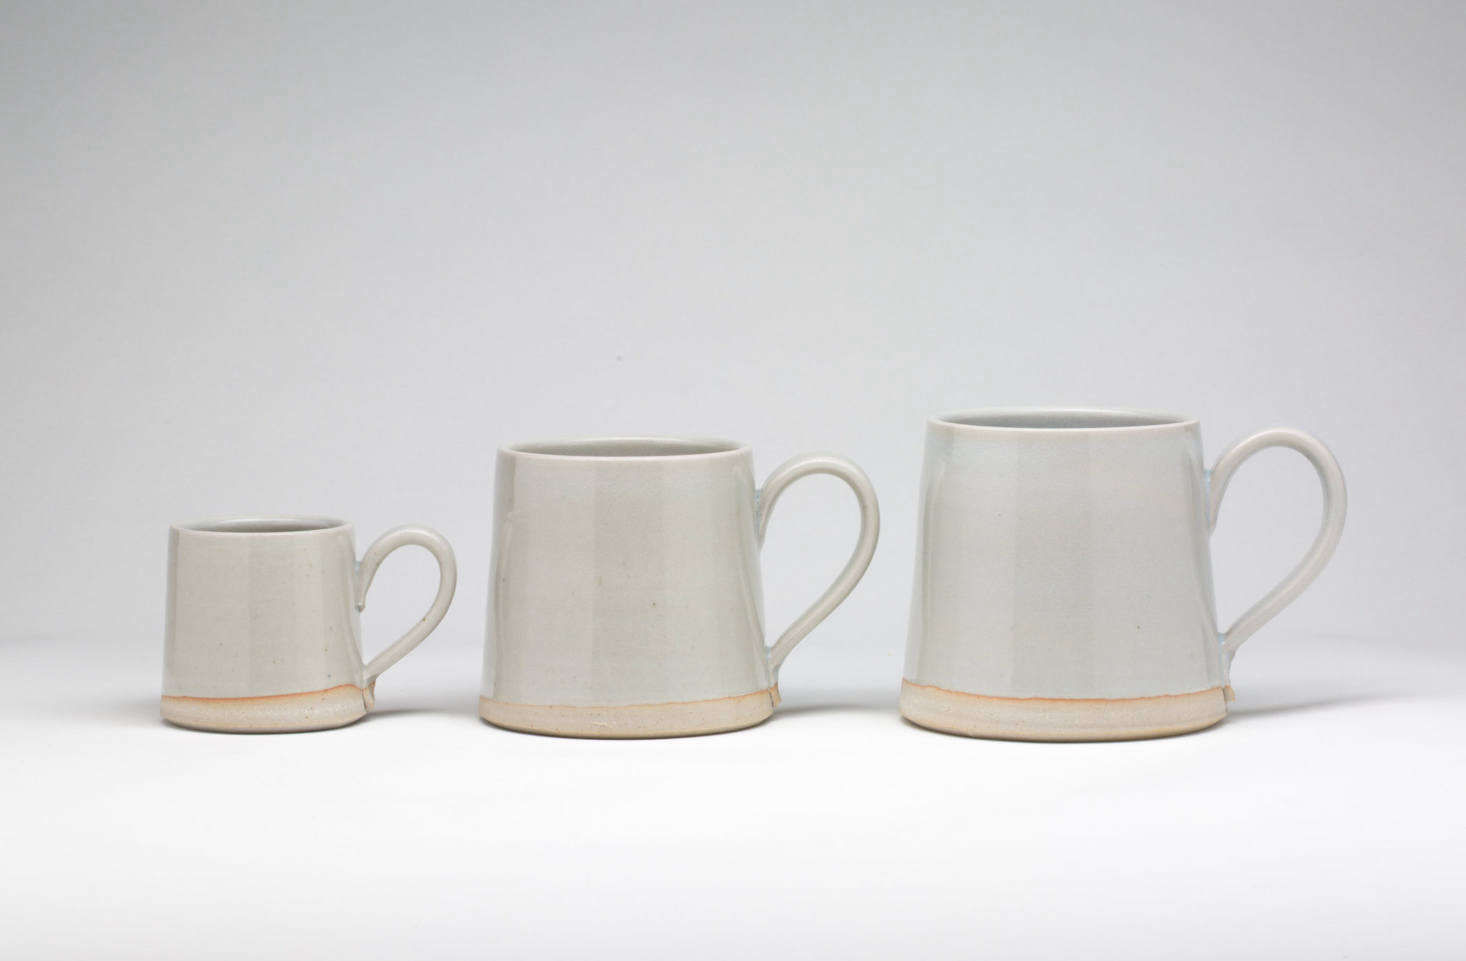 Every family member wants a mug of his or her own. From West River Field Lab in Los Angeles, handmadeMugs come in four sizes and 12 colors, starting at $20 for a four-ounce espresso cup to $28 for a 14-ounce mug. For more, seeCurrently Coveting: Japanese-Style Tableware Made in LA.